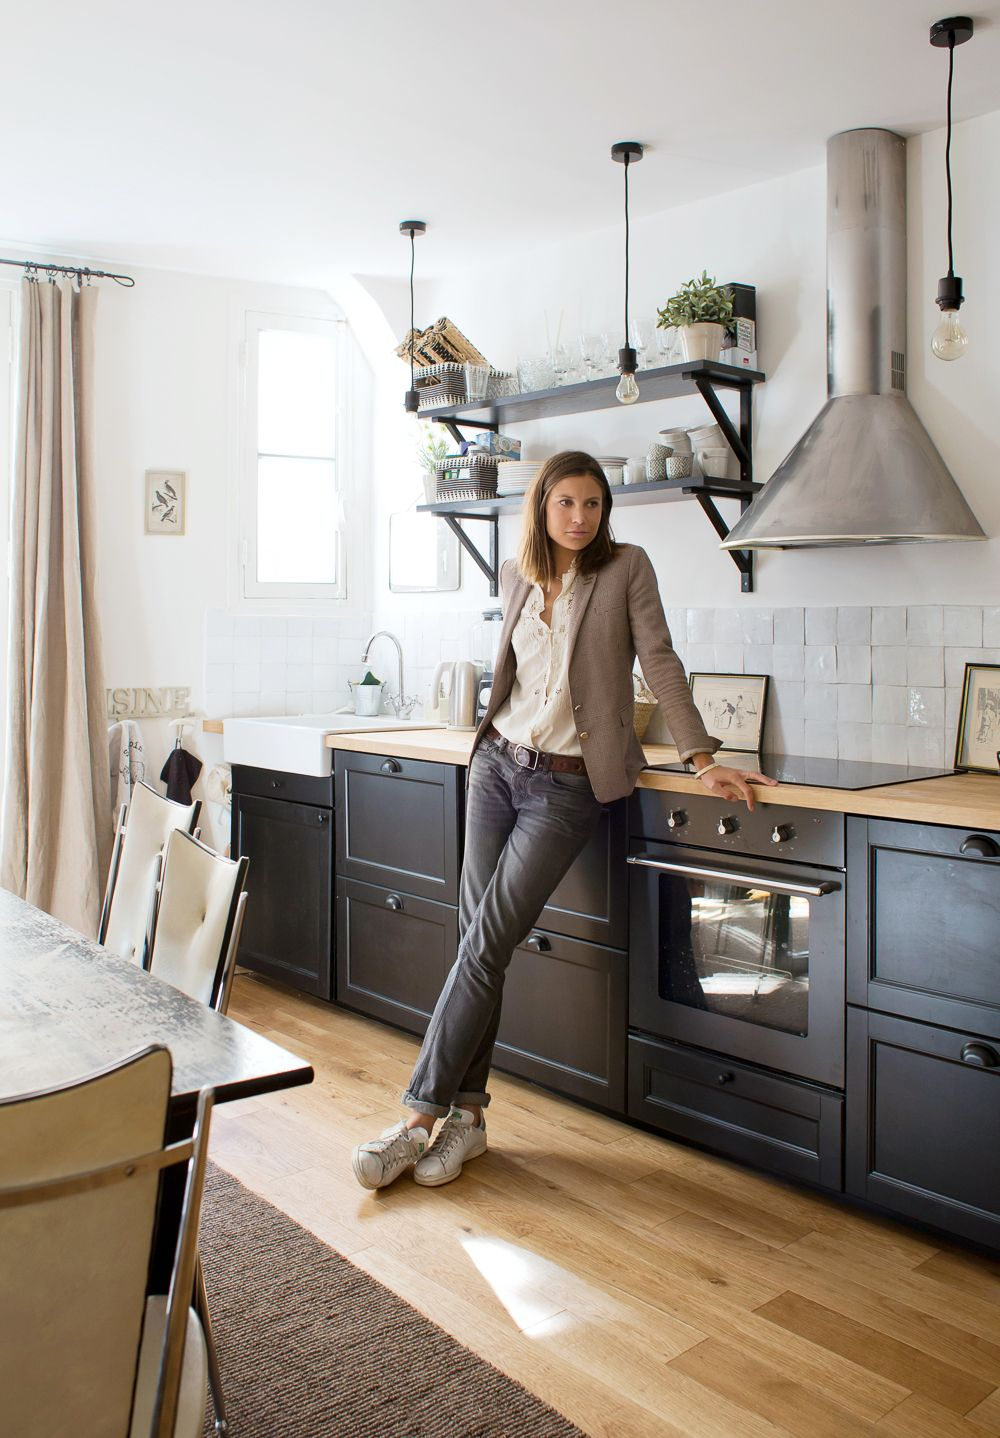 laure paris 18 me inside closet cuisine pinterest cuisines cuisiner et amenagement cuisine. Black Bedroom Furniture Sets. Home Design Ideas